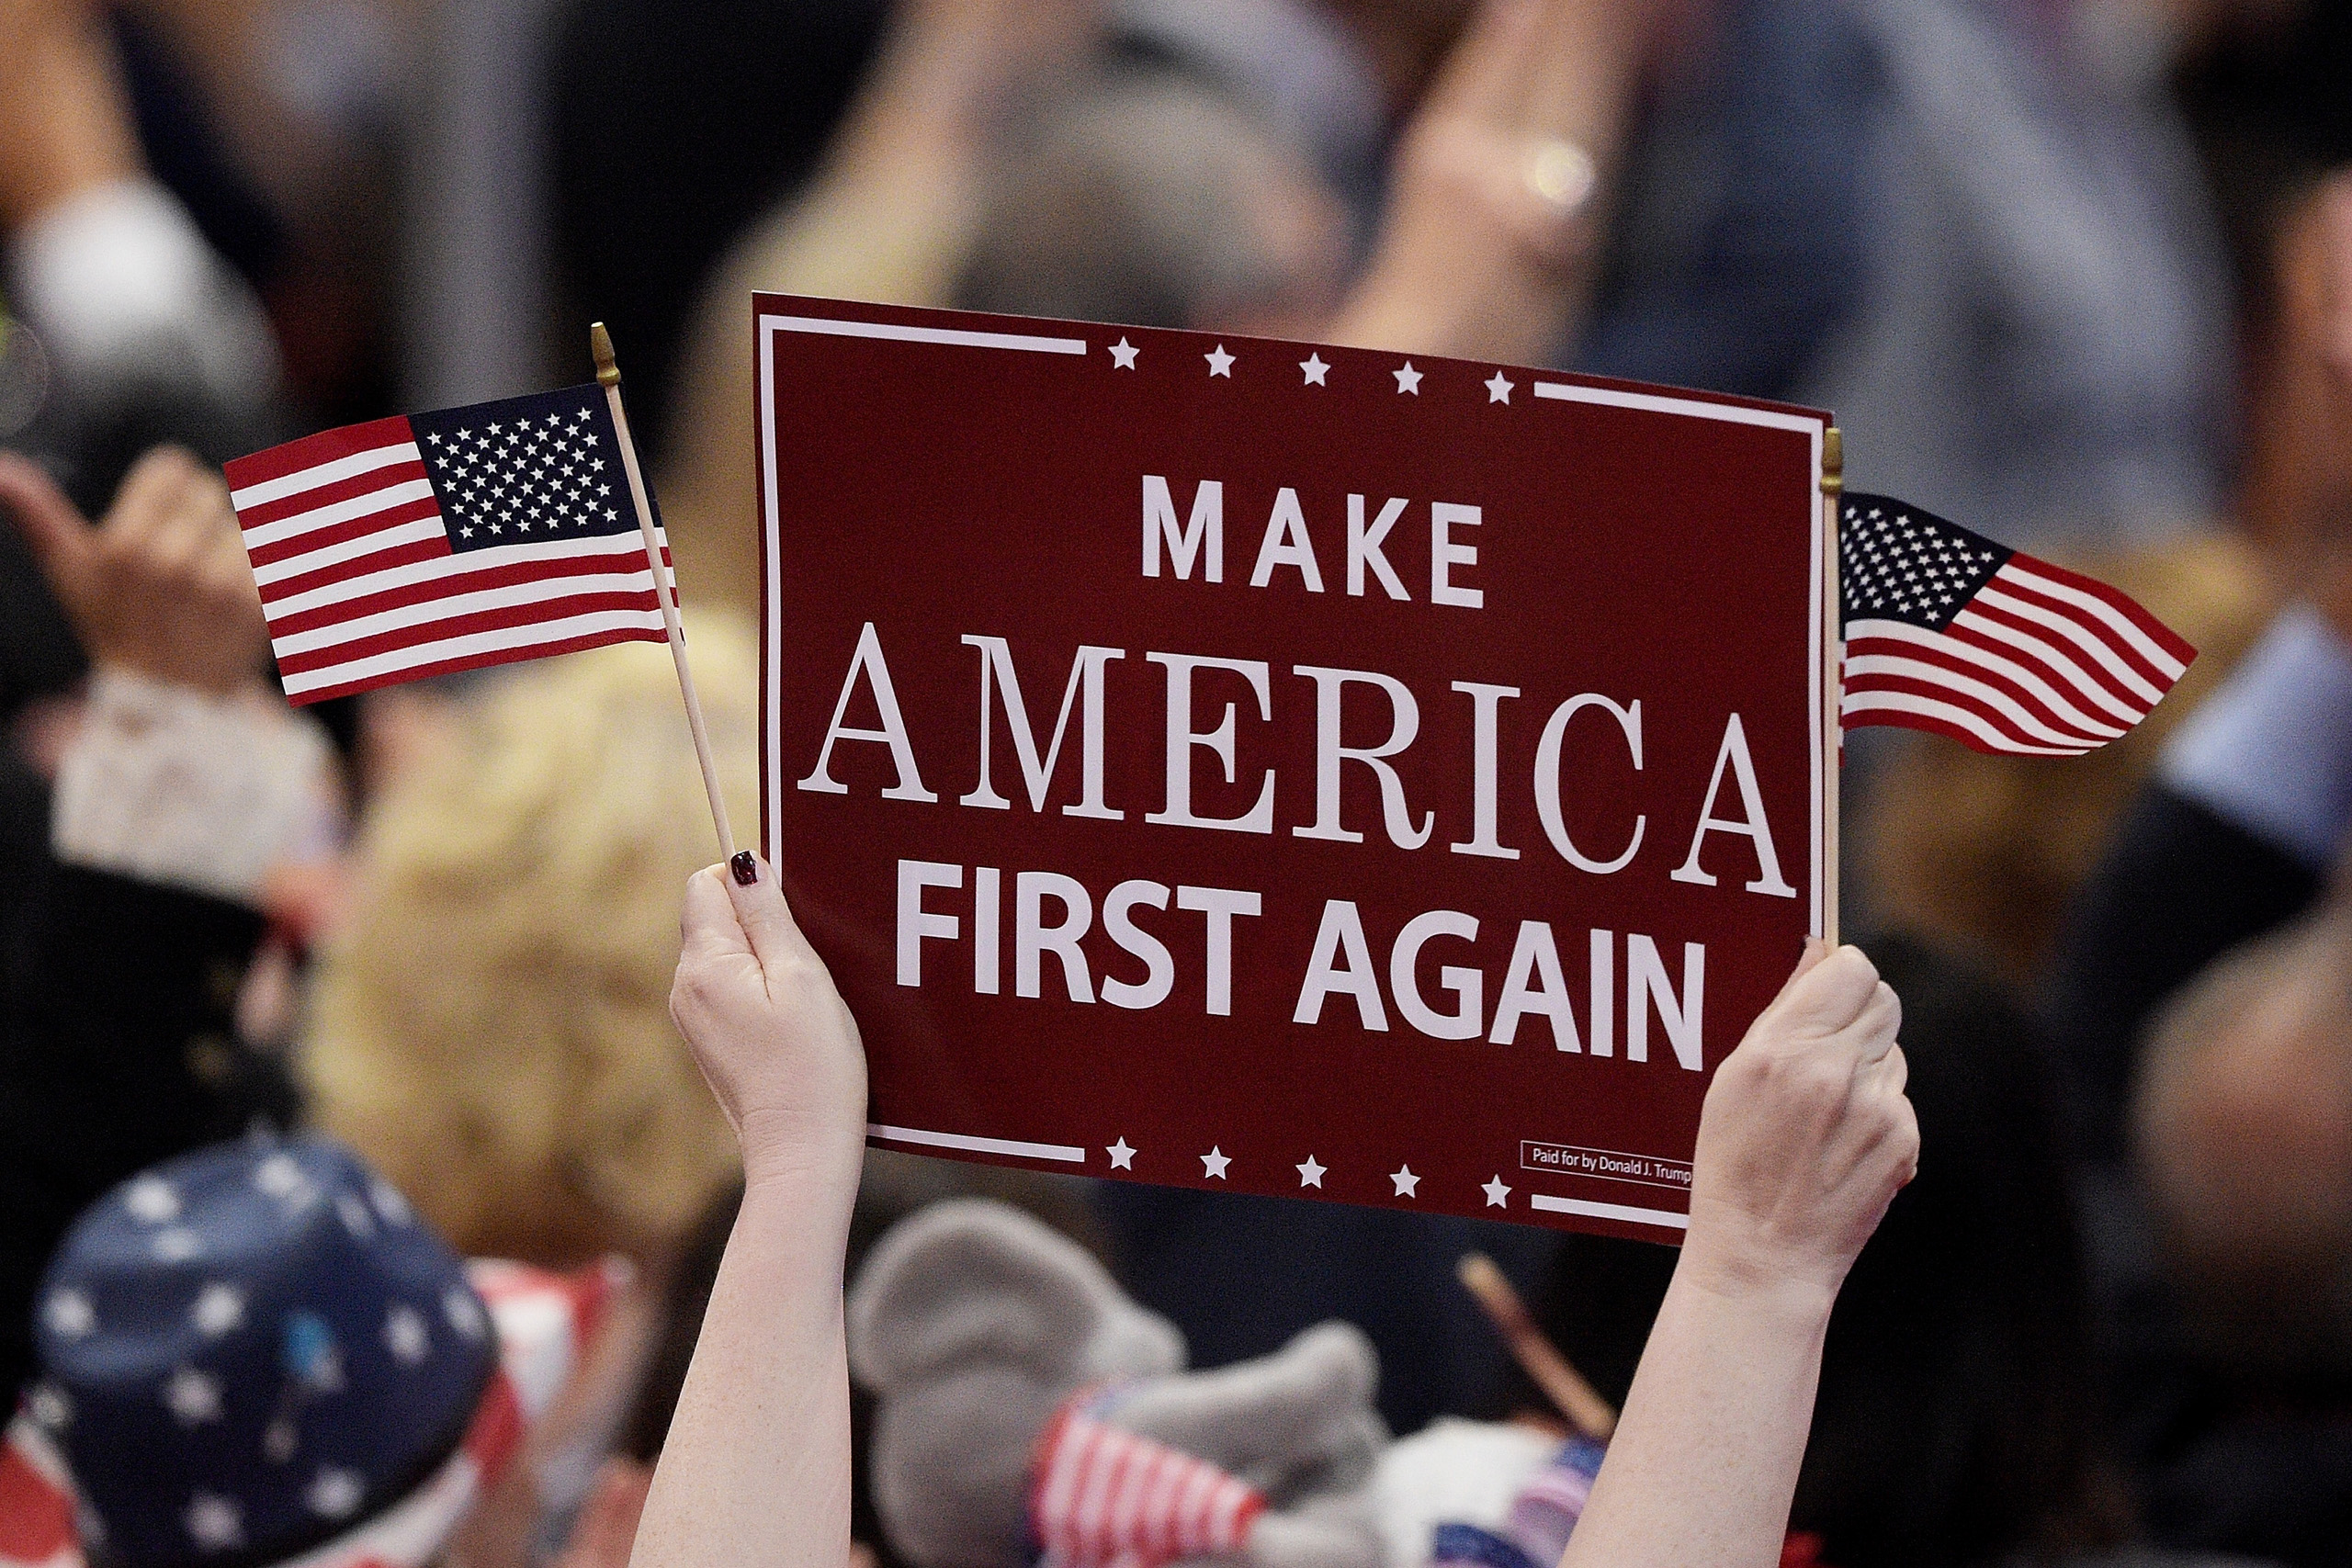 'America First' policy: Is the US scoring an own goal?